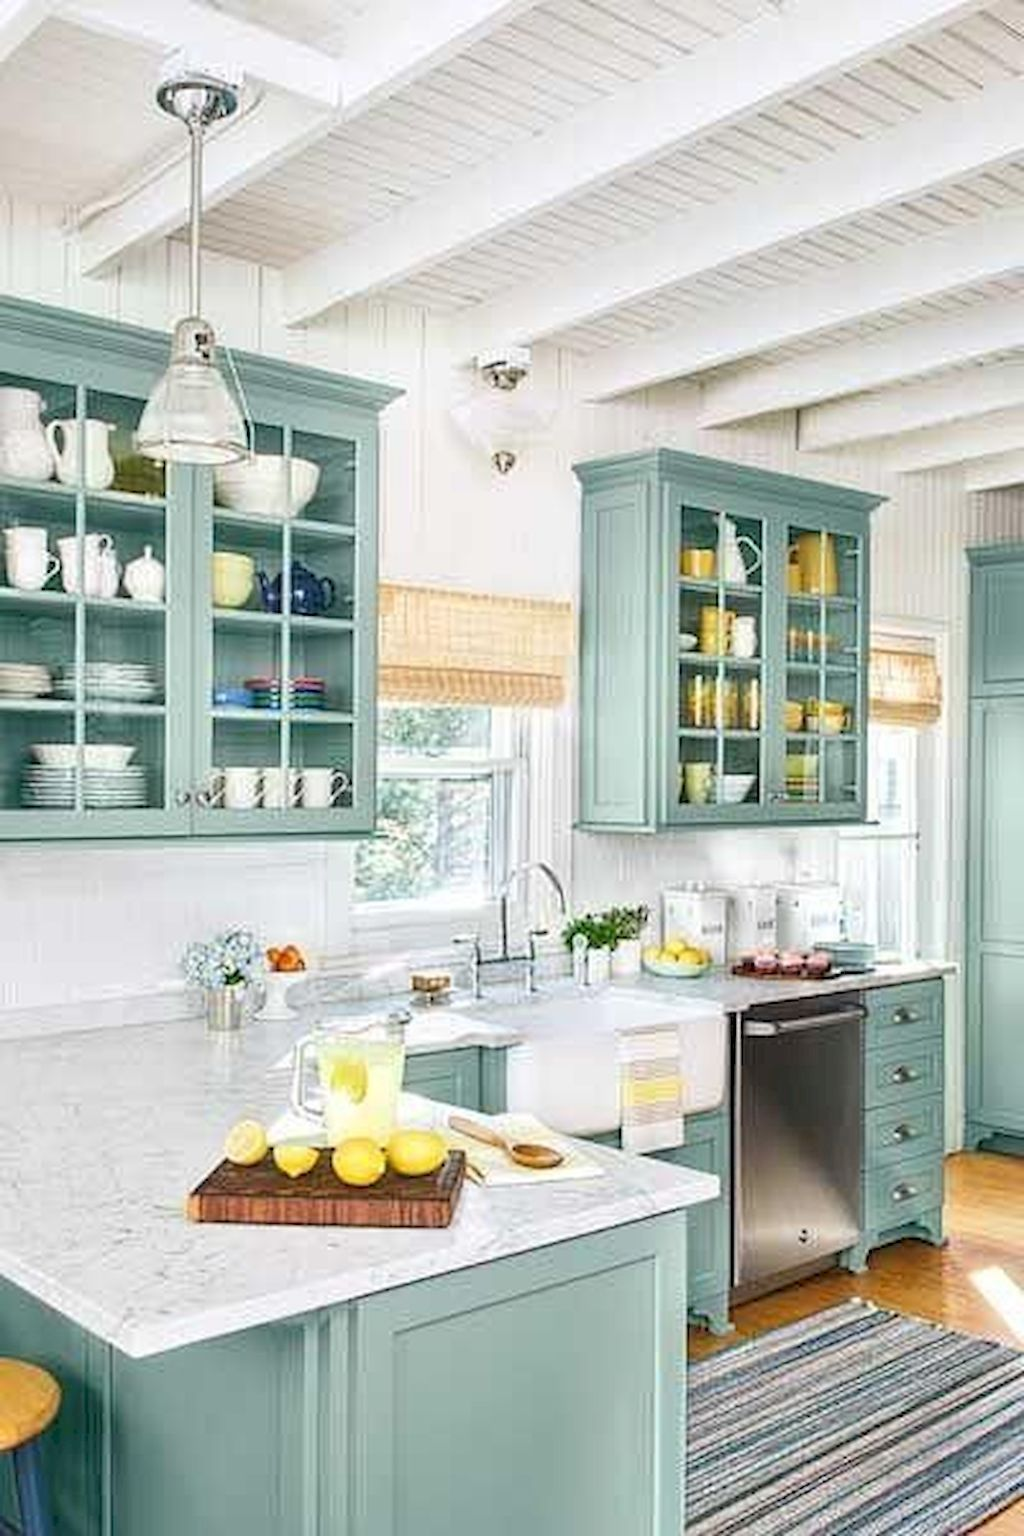 80 Gorgeous Farmhouse Gray Kitchen Cabinet Design Ideas Cabinet Design Farmhouse Gorgeous Gray Ideas Kitchen In 2020 Beach Cottage Kitchens Custom Kitchen Cabinets Home Kitchens